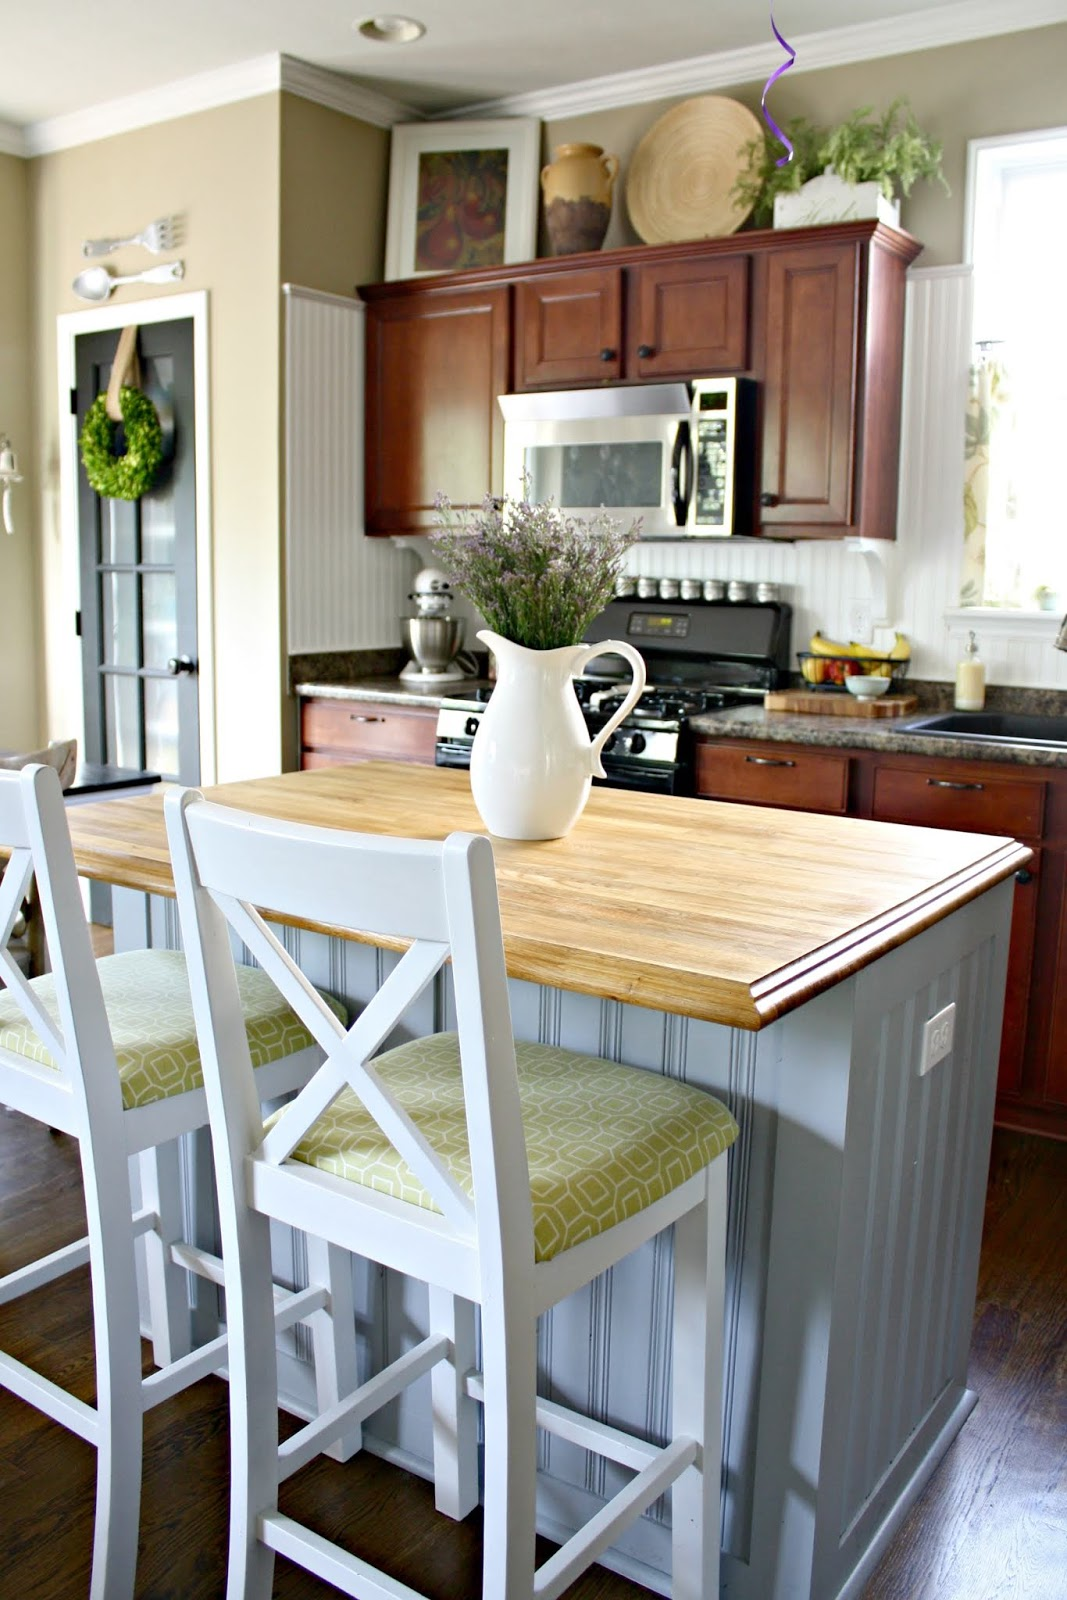 Old fashioned narrow kitchen cabinet